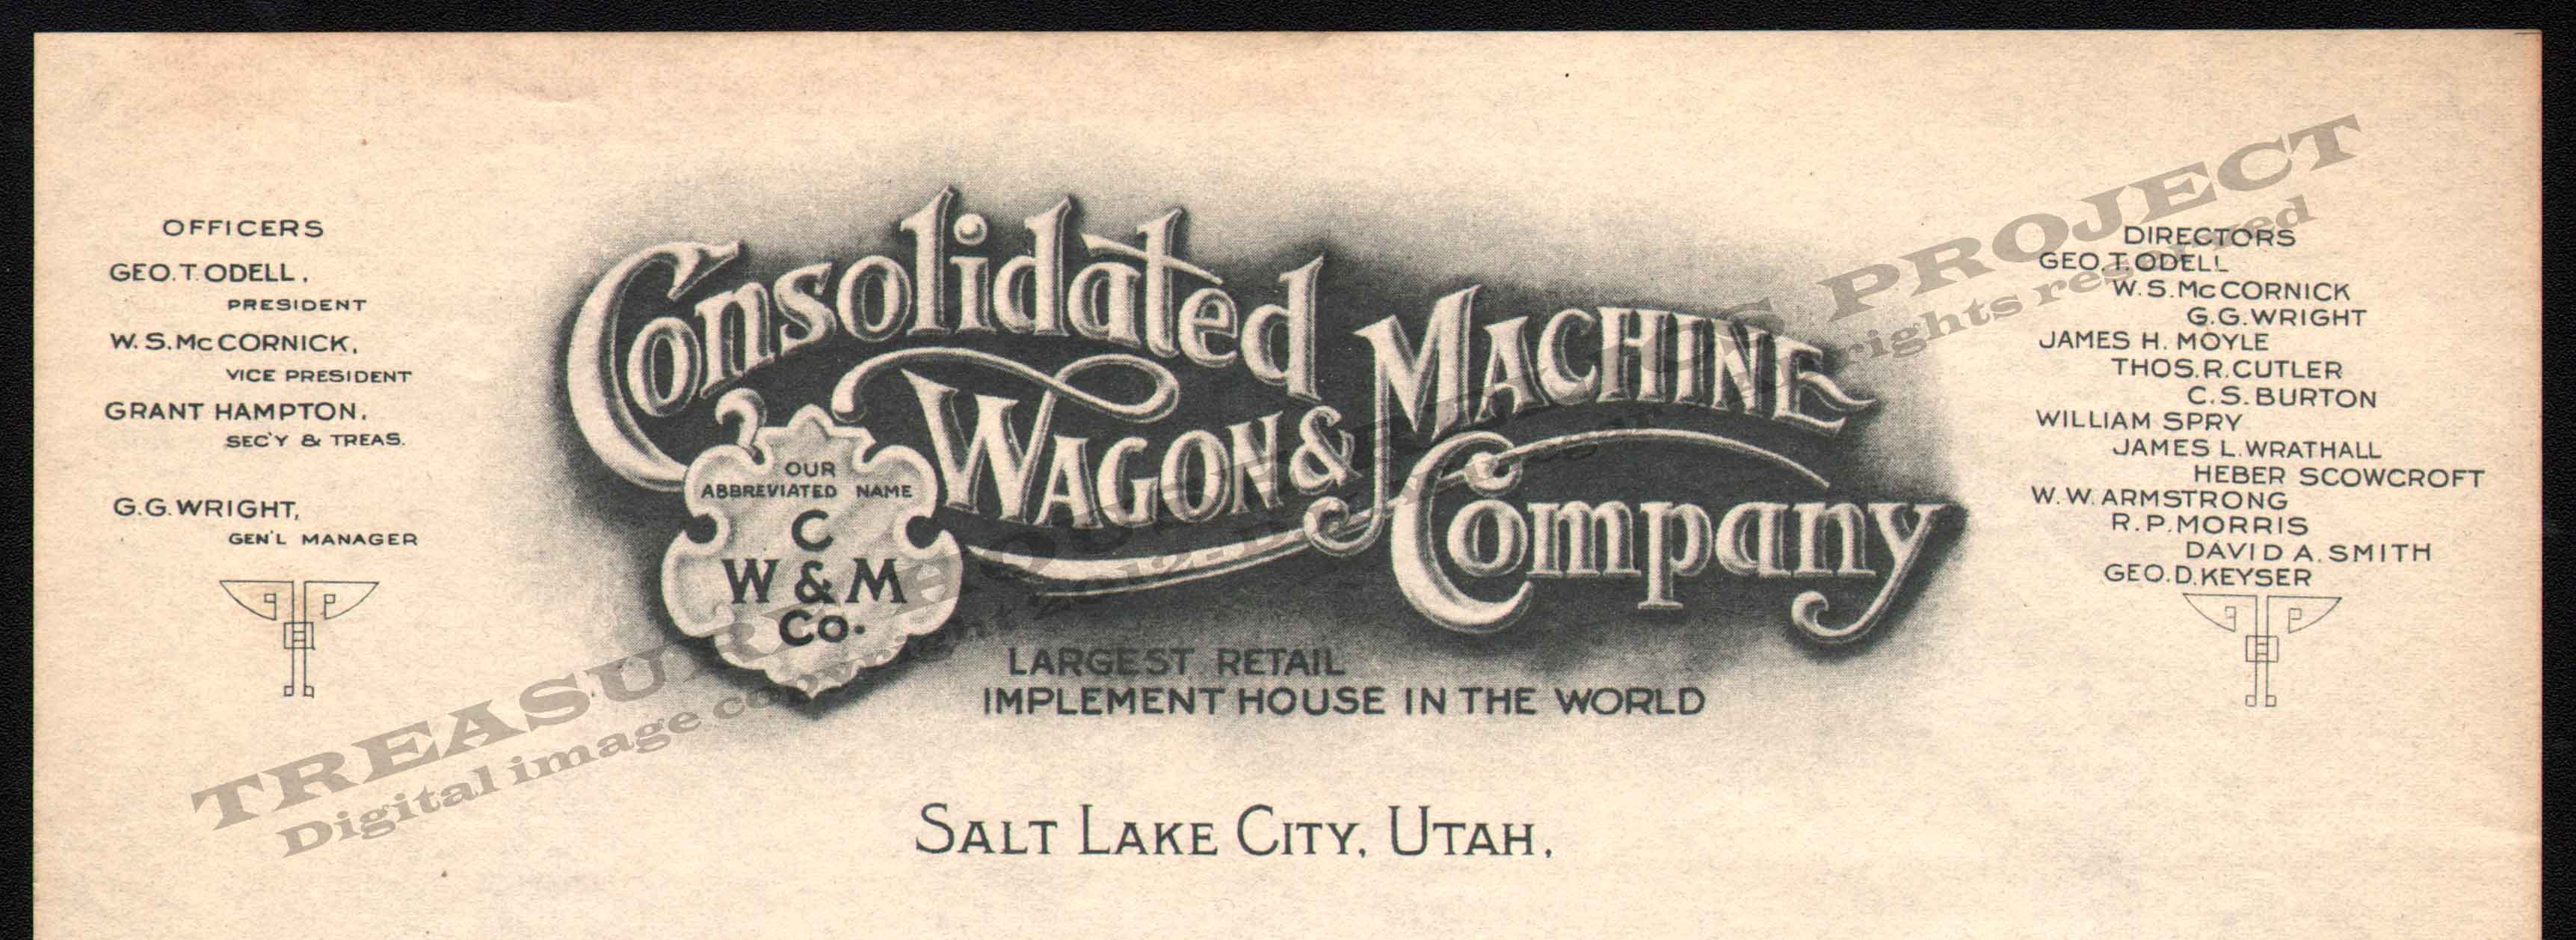 LETTERHEAD_CONSOLIDATED_WAGON___MACHINE_CO_crop_emboss.jpg